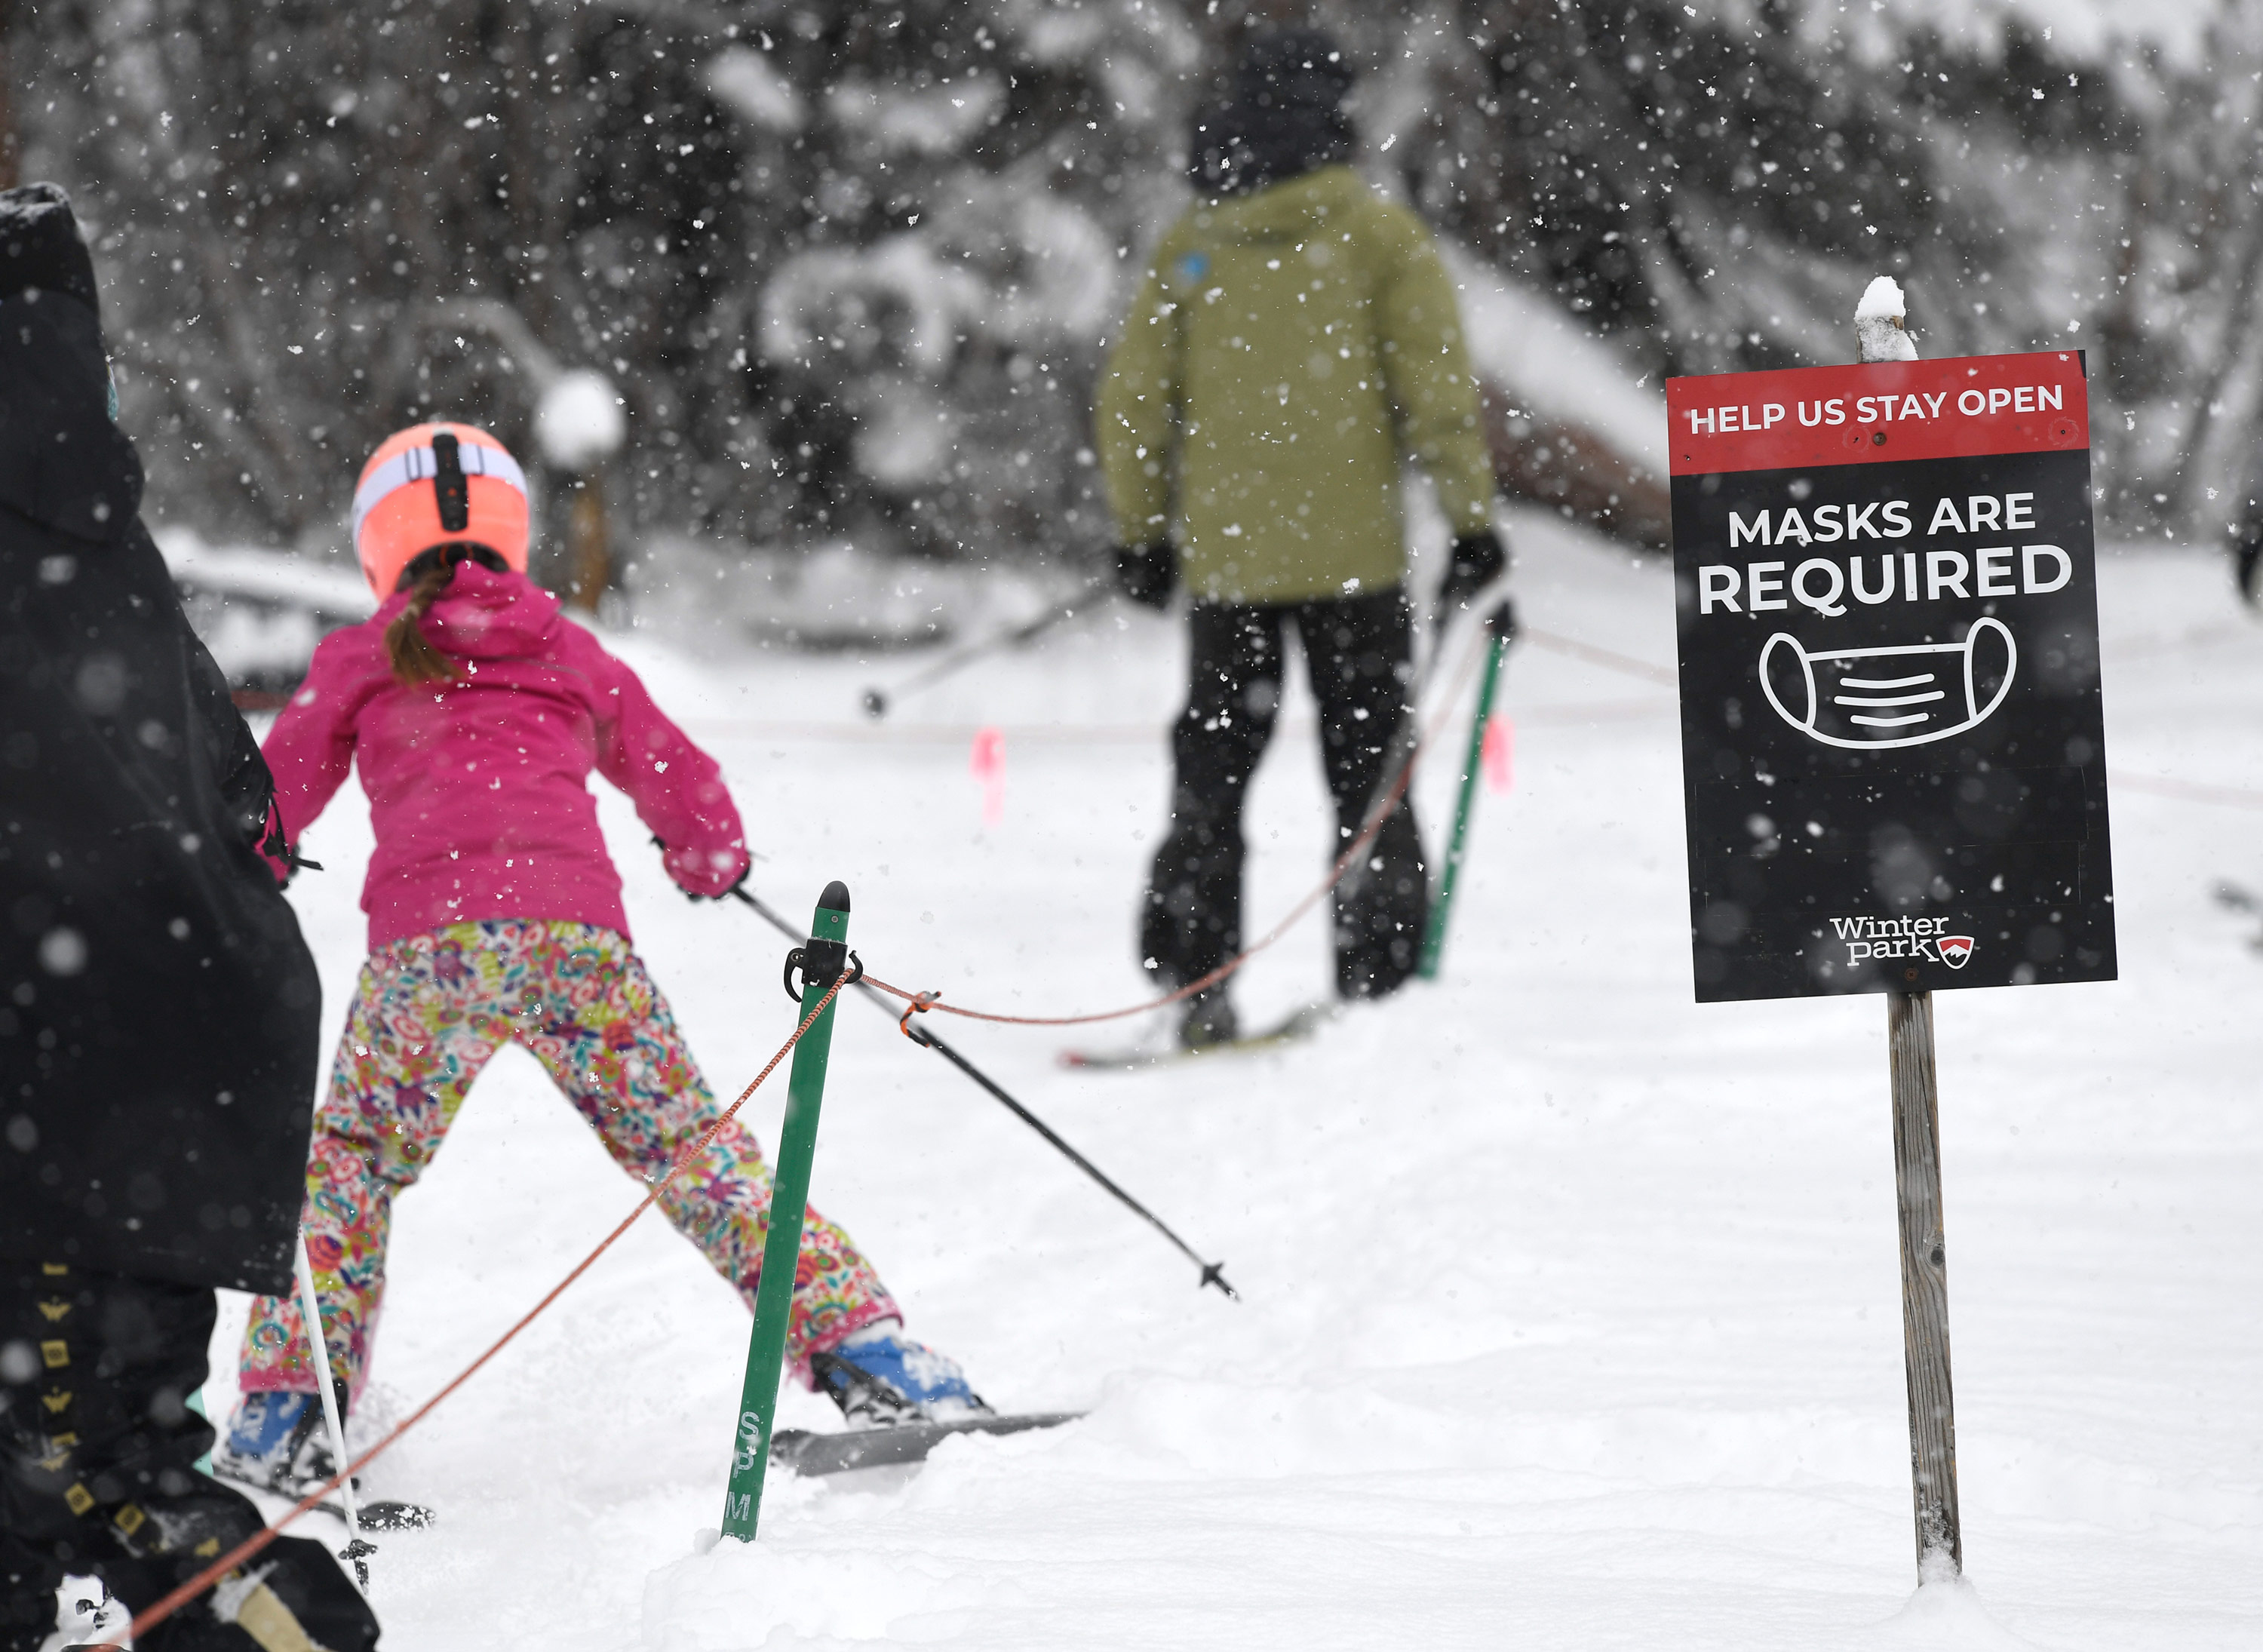 Skiers pass a mandatory face masks sign in Winter Park, Colorado, on February 13.